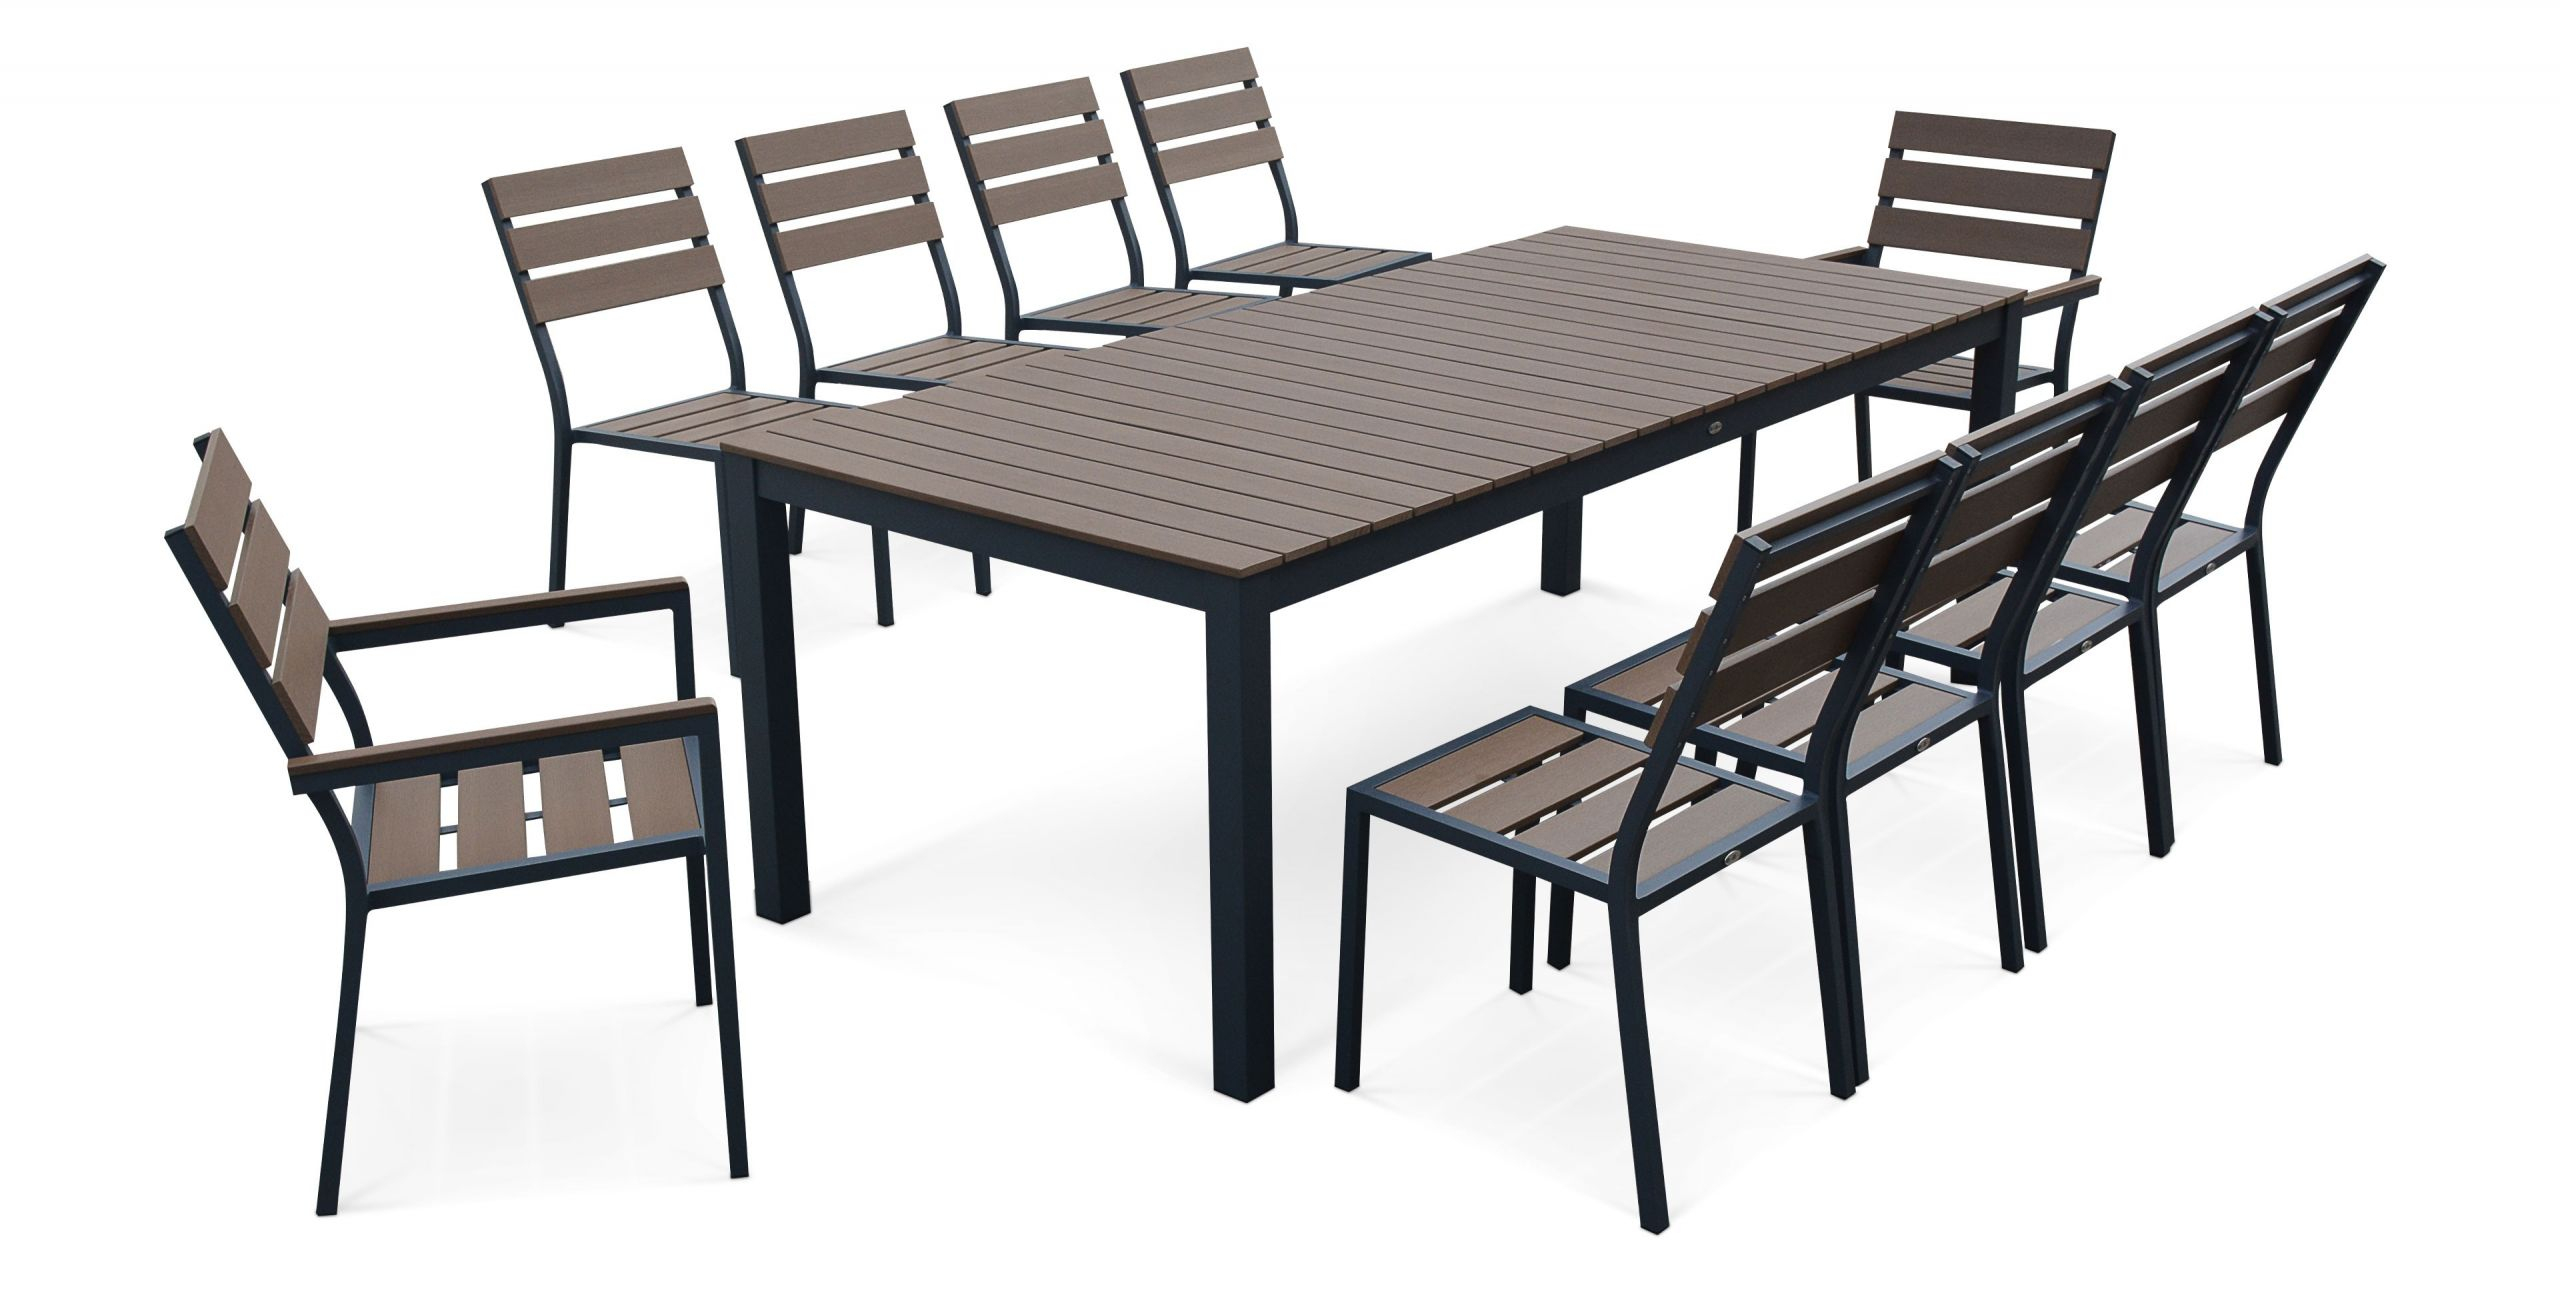 Table Chaise Jardin Pas Cher Conception - Idees Conception ... destiné Table Et Chaises De Jardin Pas Cher